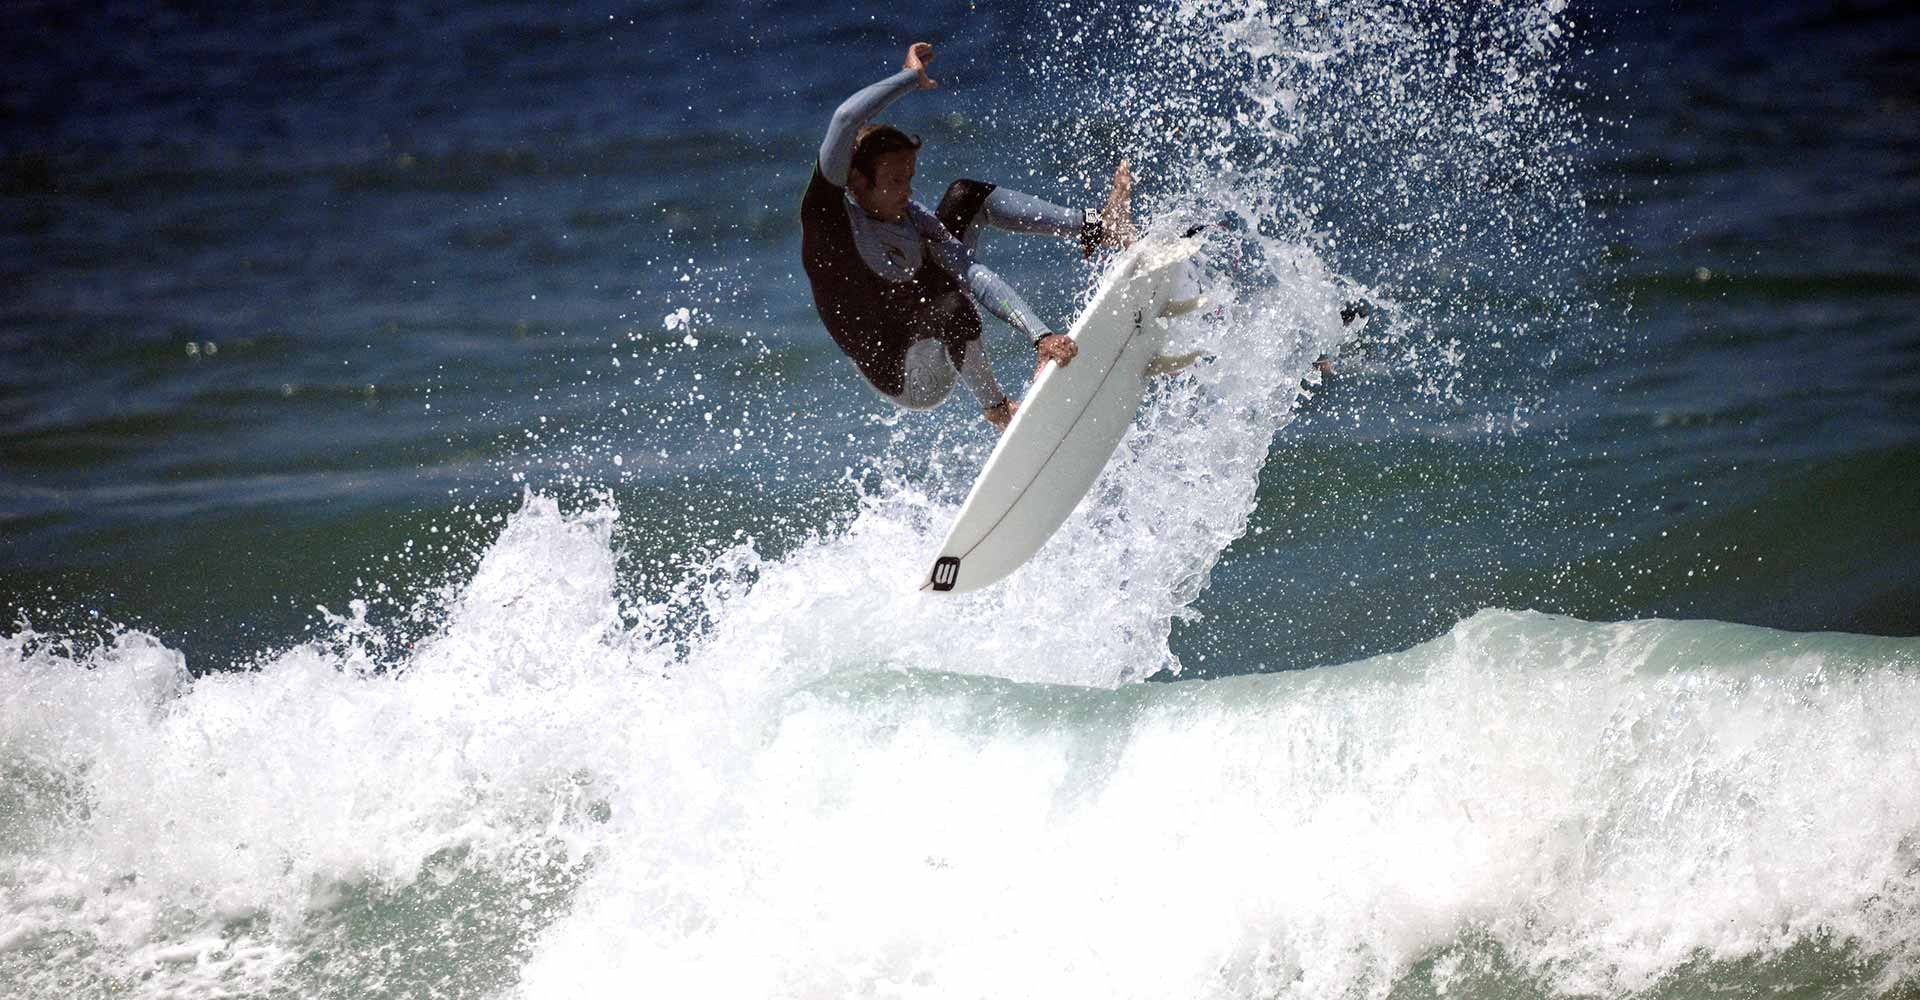 the-spoon, micasurfboards, mica-lourenço, surfing, air, wave, surfboard, surf-contest, buy-surfboard